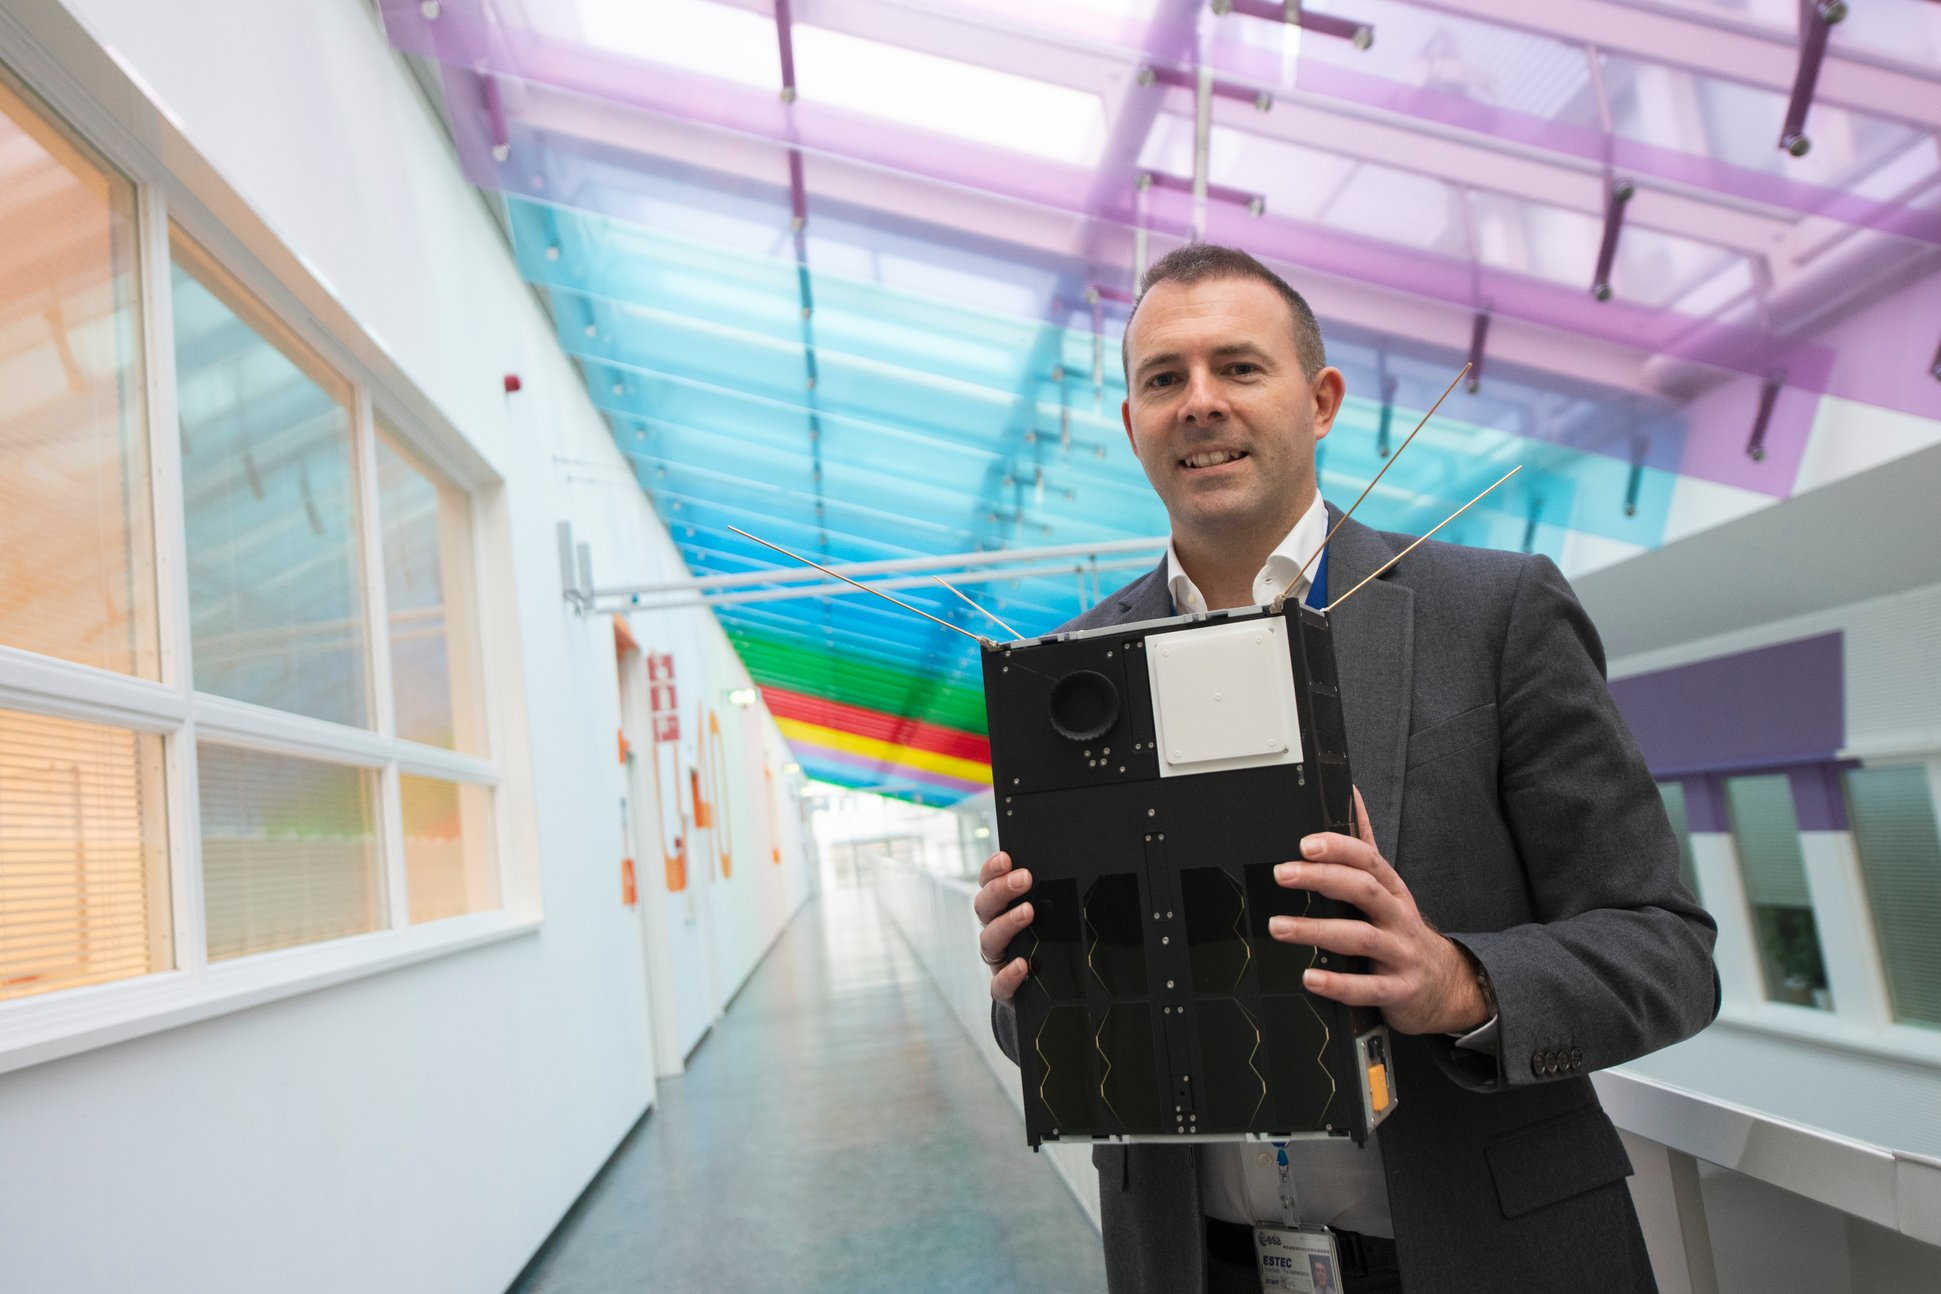 Roger Walker, head of ESA's Technology CubeSats, holding a 3D printed model of GomX-4B, which while the size of a cereal box, is the largest CubeSat ESA has yet flown - Credit: ESA-G. Porter